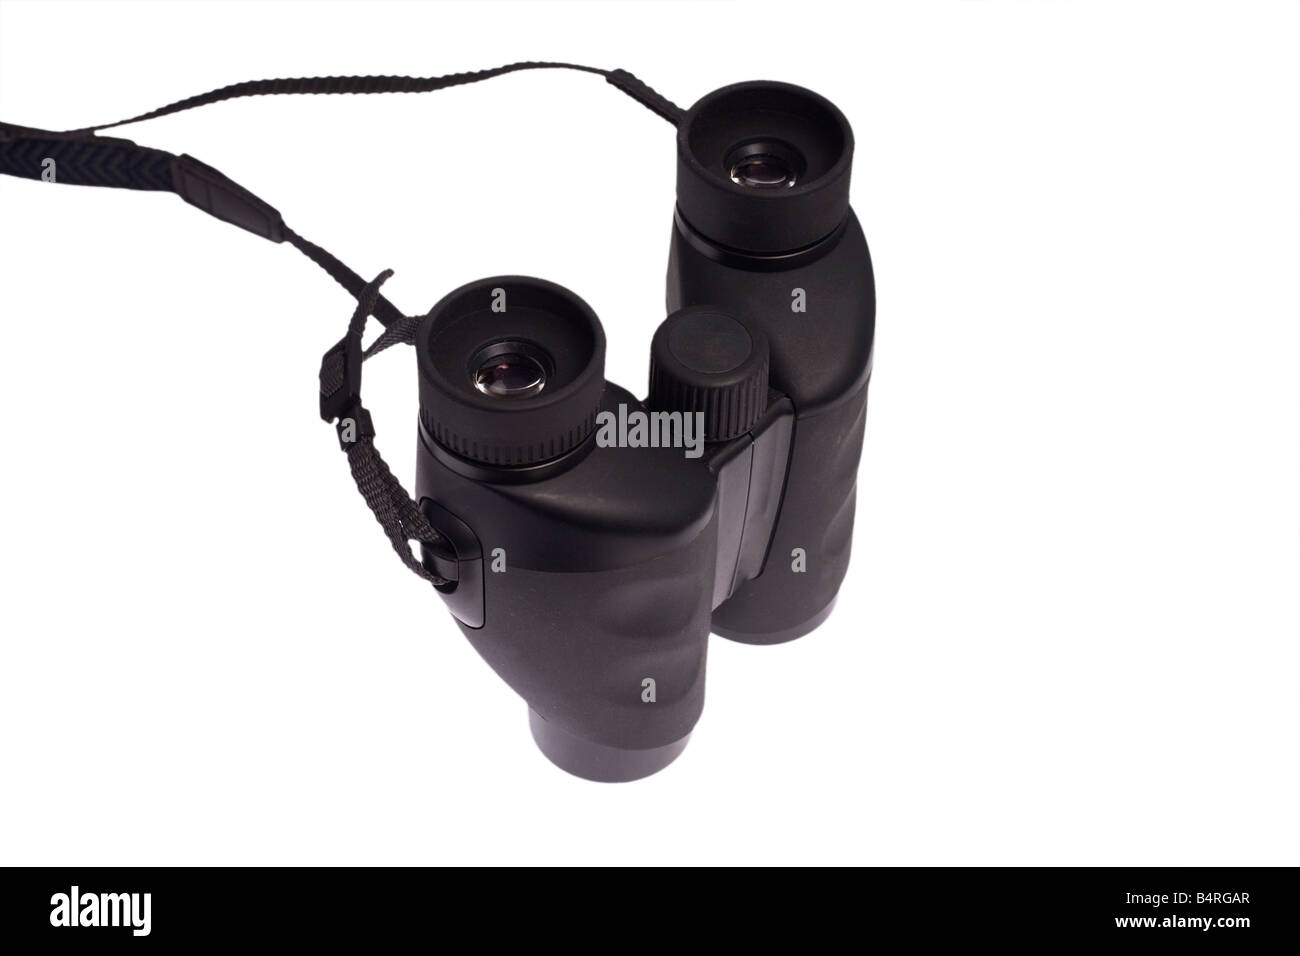 a pair of binoculars isolated on a white background Stock Photo